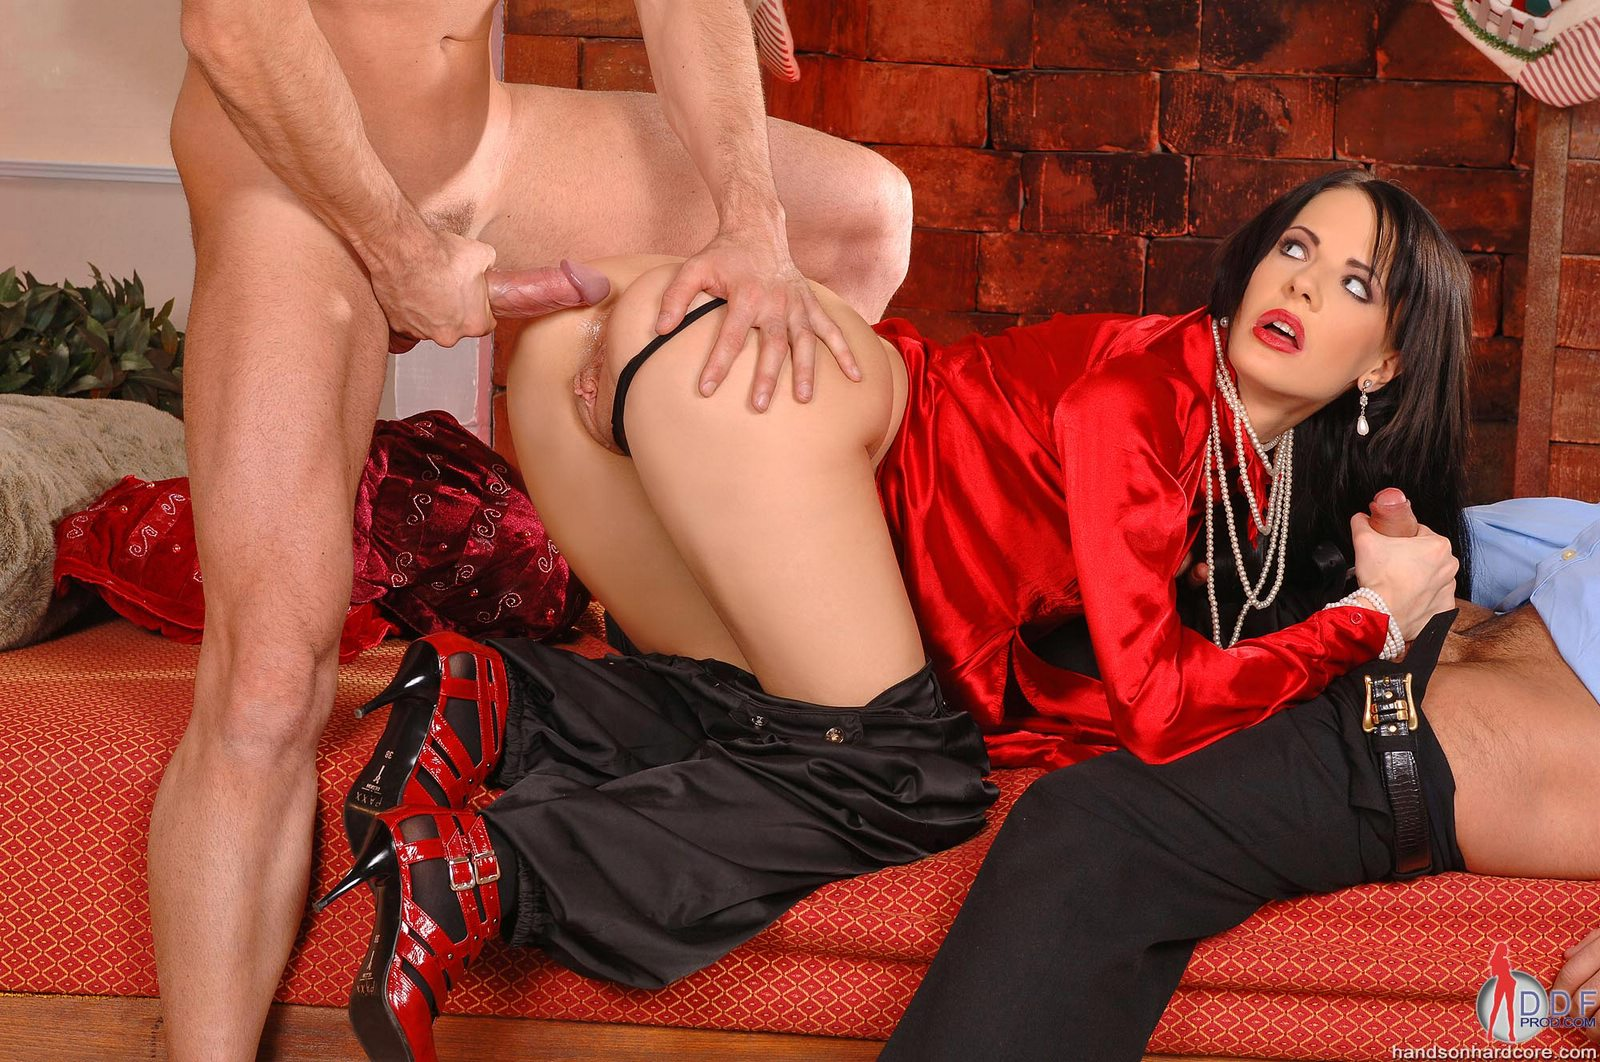 Dominance and submission video